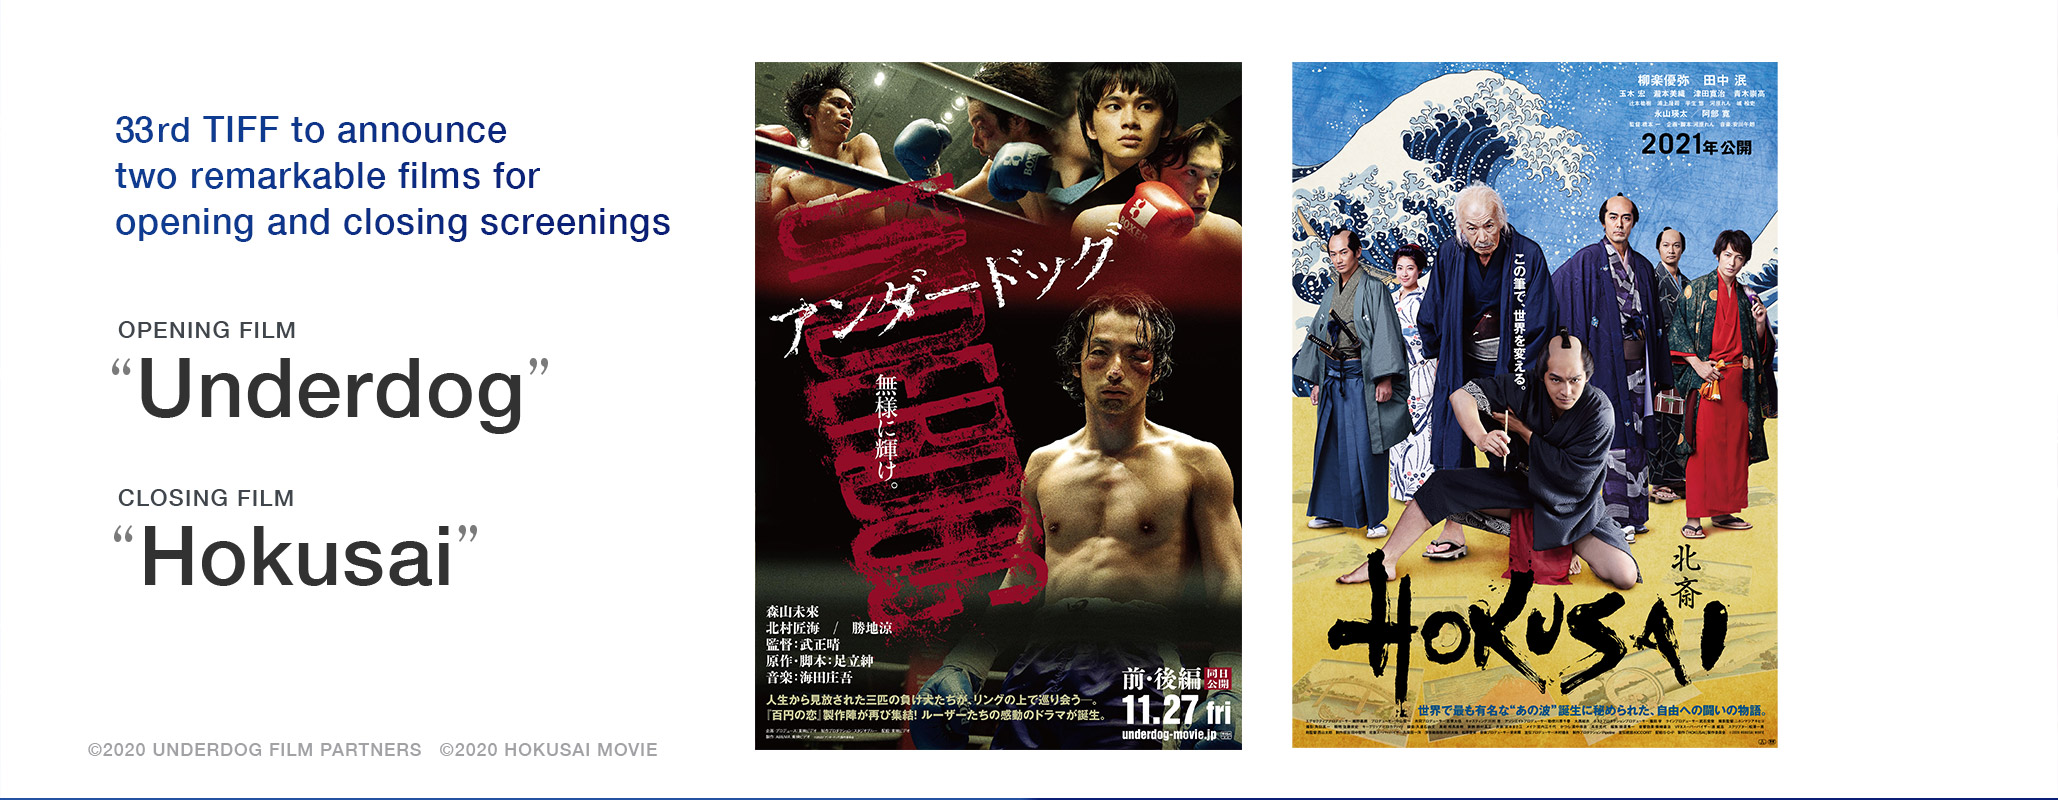 "33rd TIFF to Open with ""Underdog"" and Close with ""Hokusai"""